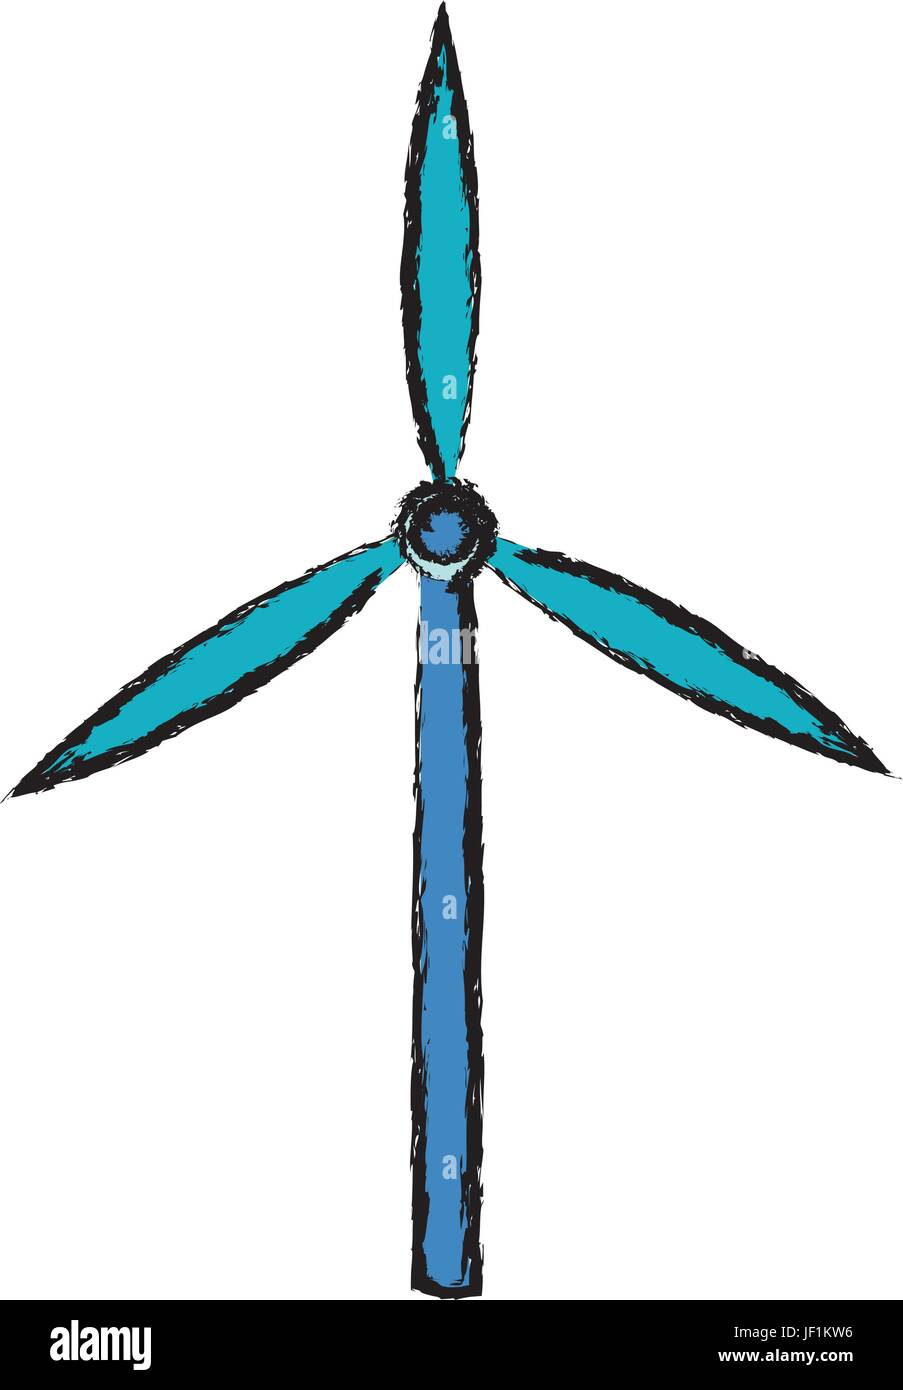 Wind Turbine Tower Energy Recycle Design Stock Vector Art